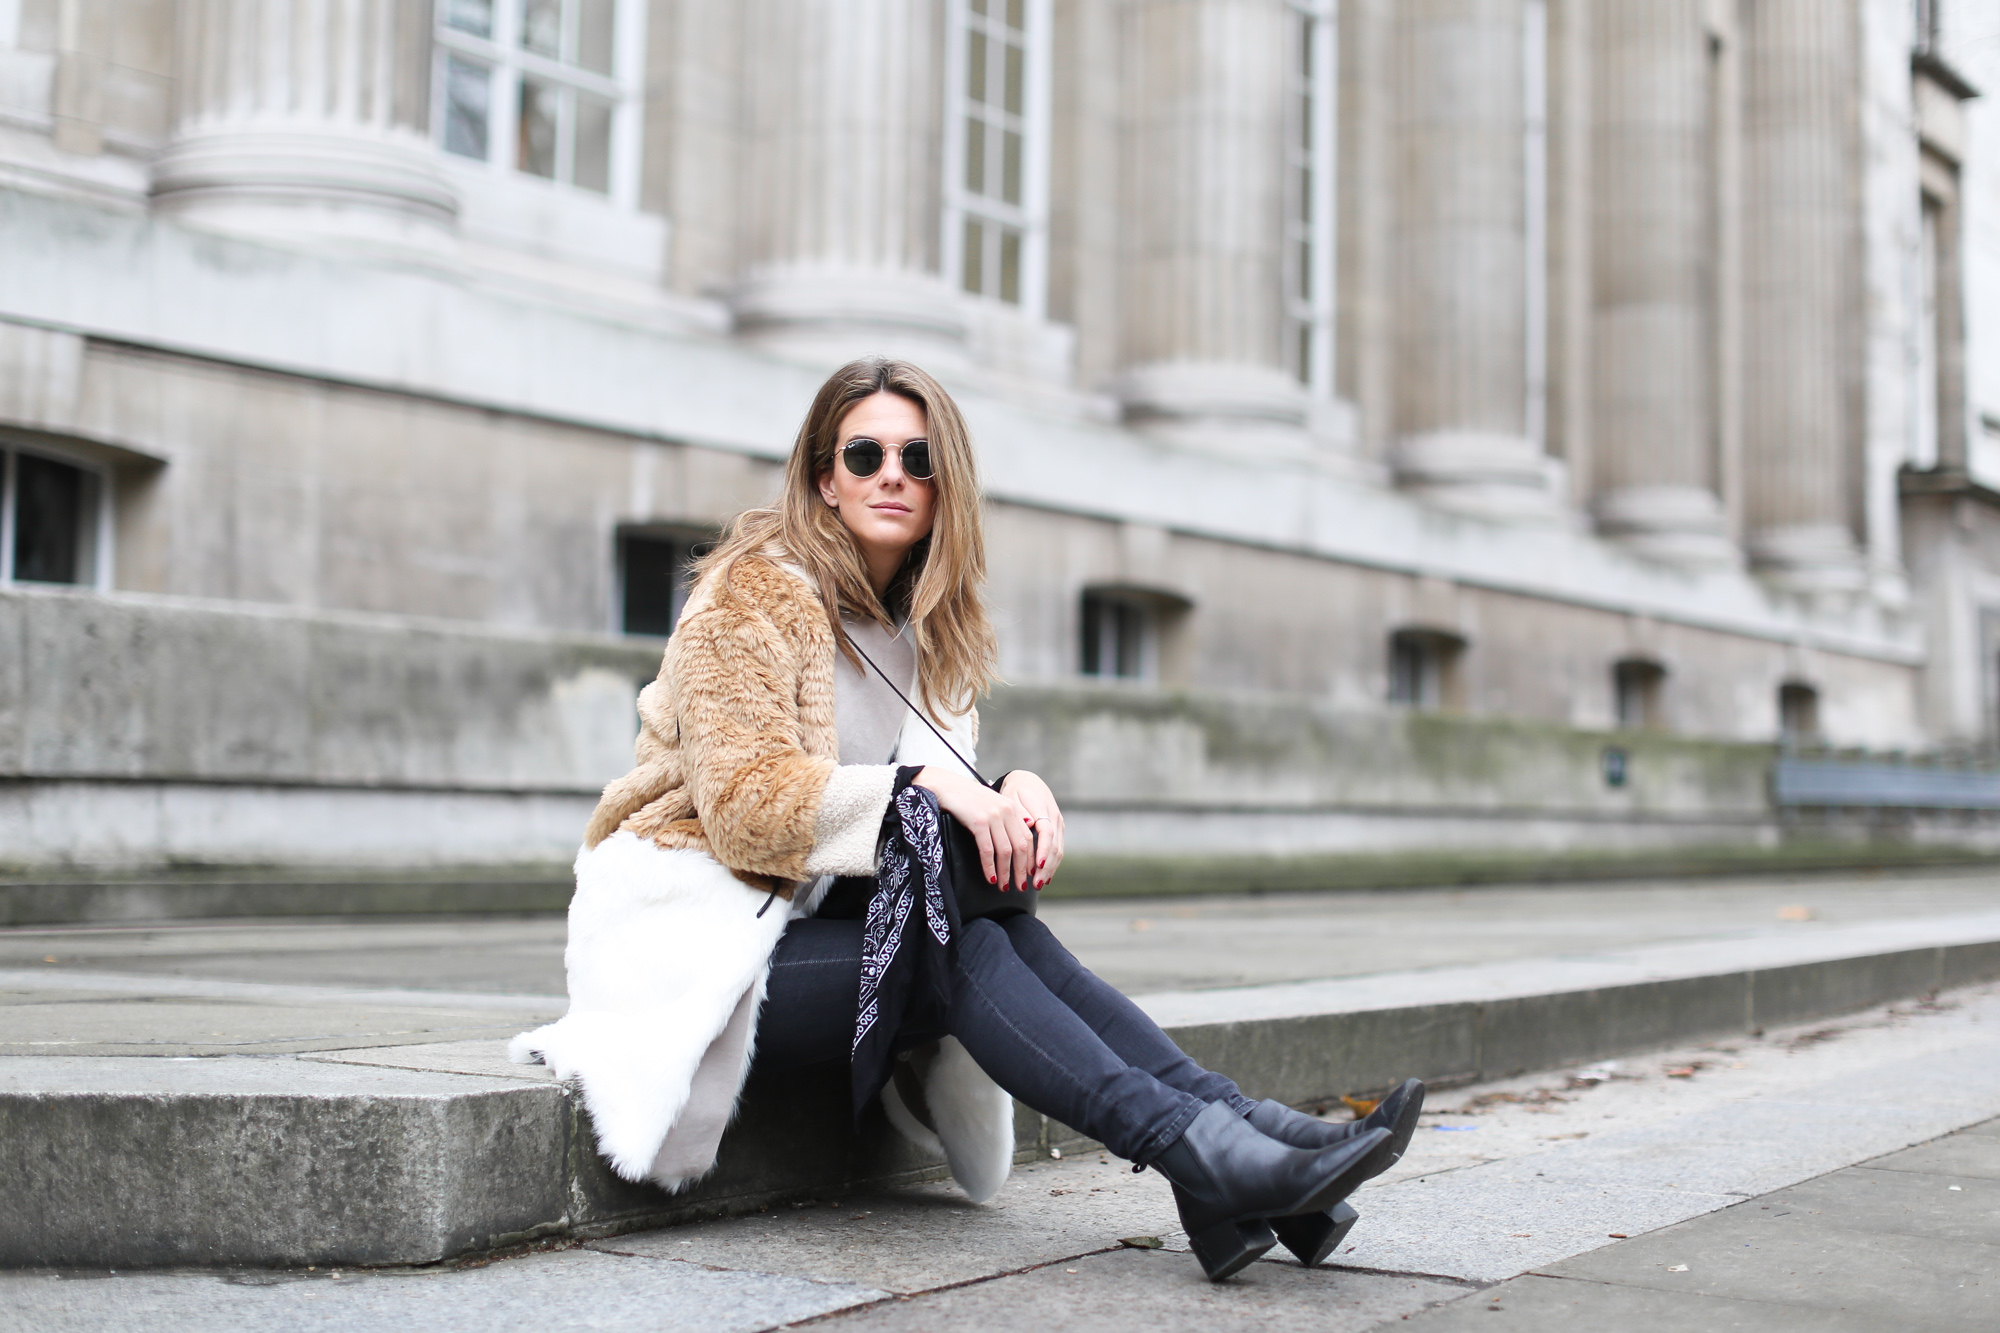 clochet_streestyle_london_asos_faux_fur_patchowork_coat_topshop_jamie_jeans-13